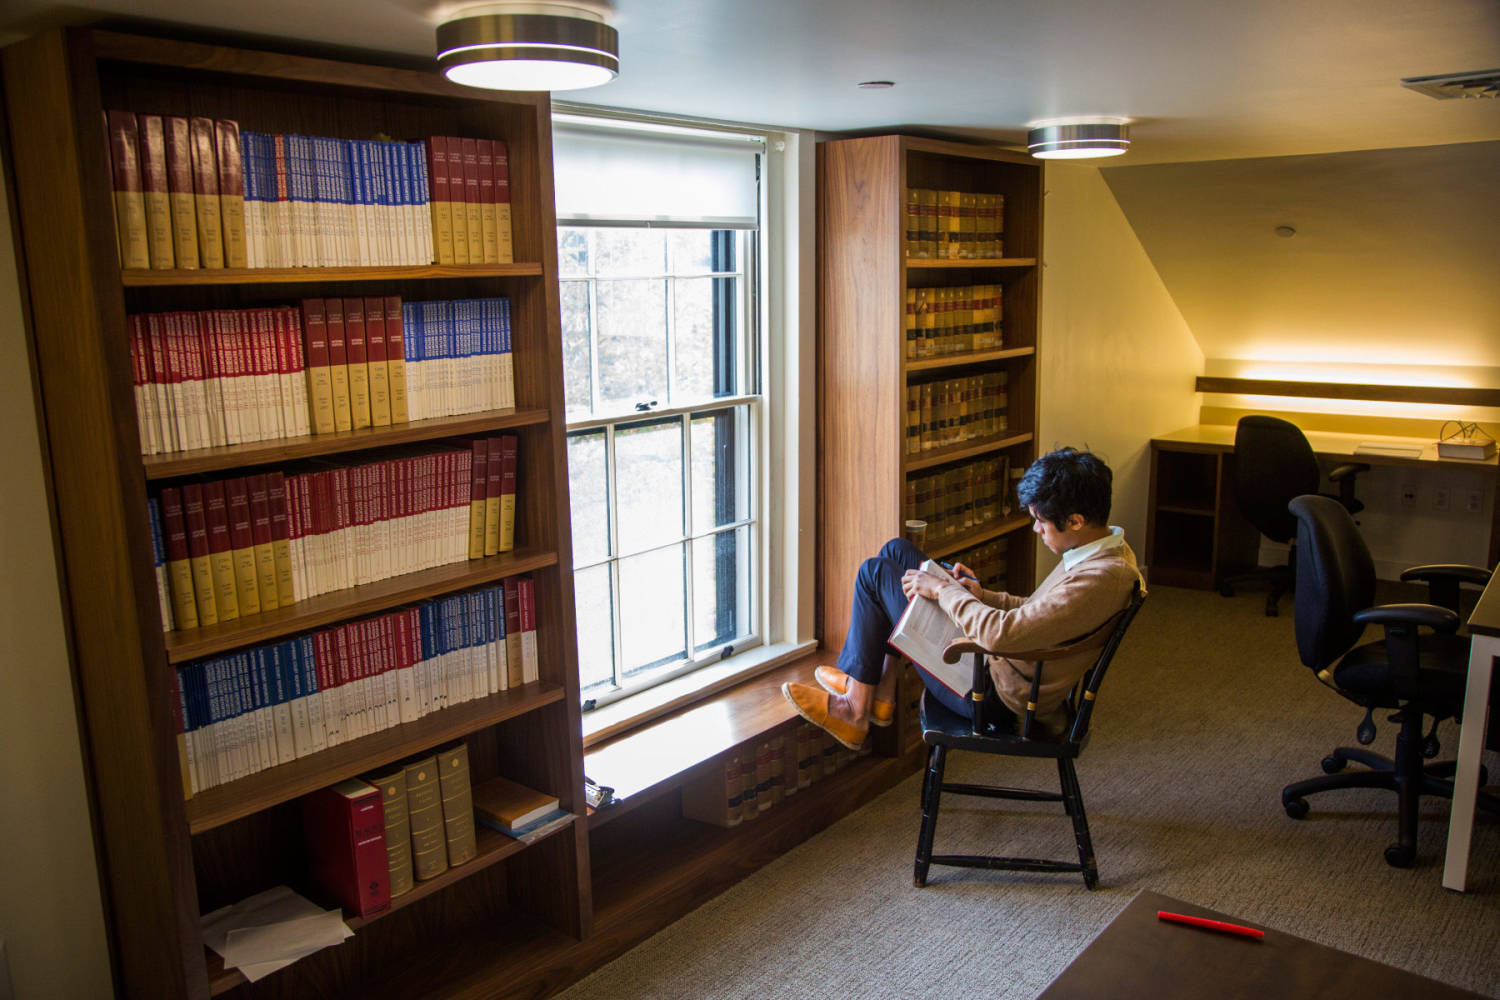 Student studies in front of a window in a study room